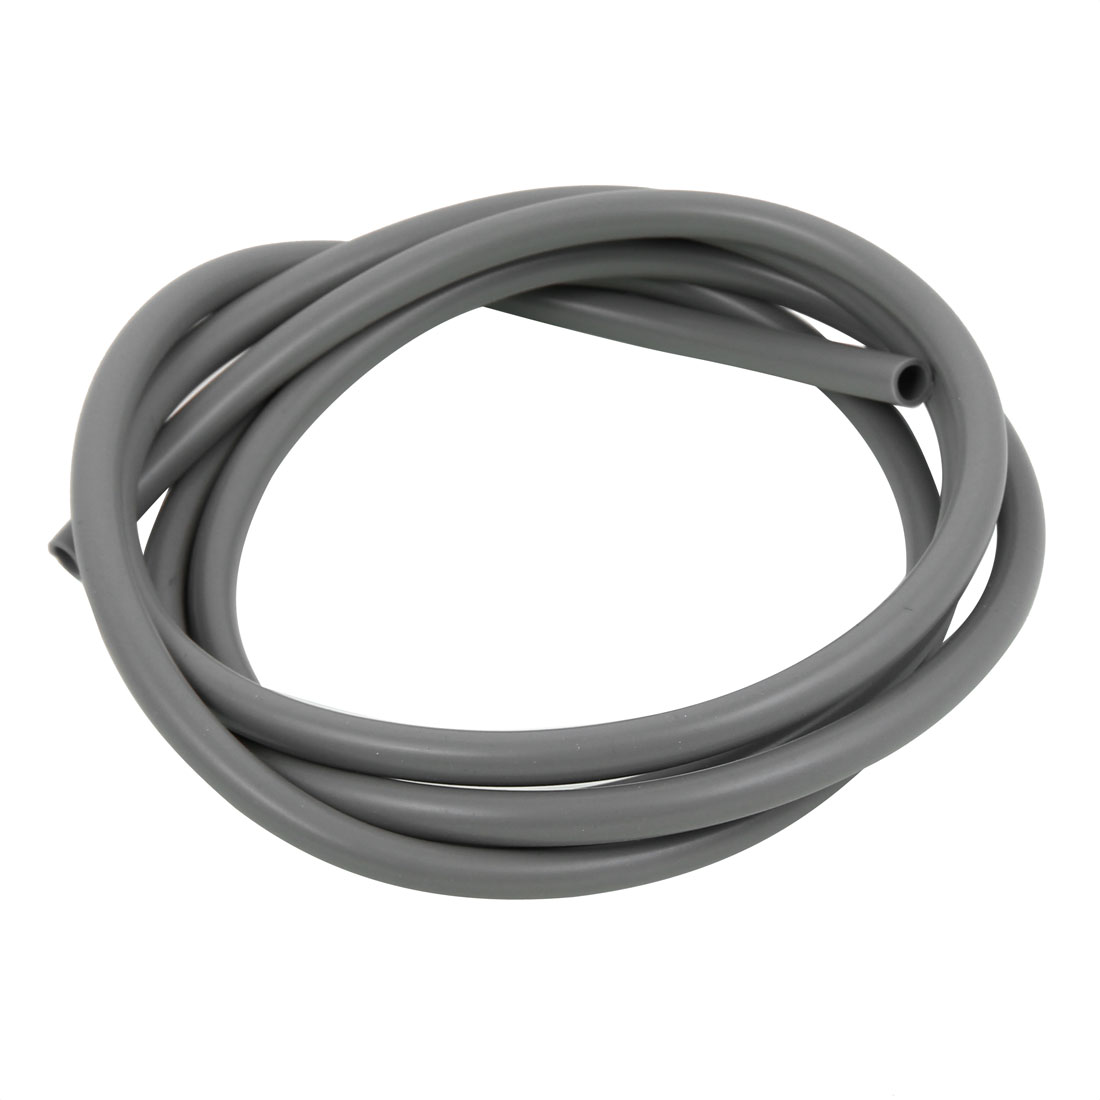 6mm x 8mm Gray Silicone Tube Water Air Pump Hose Pipe 2M Length